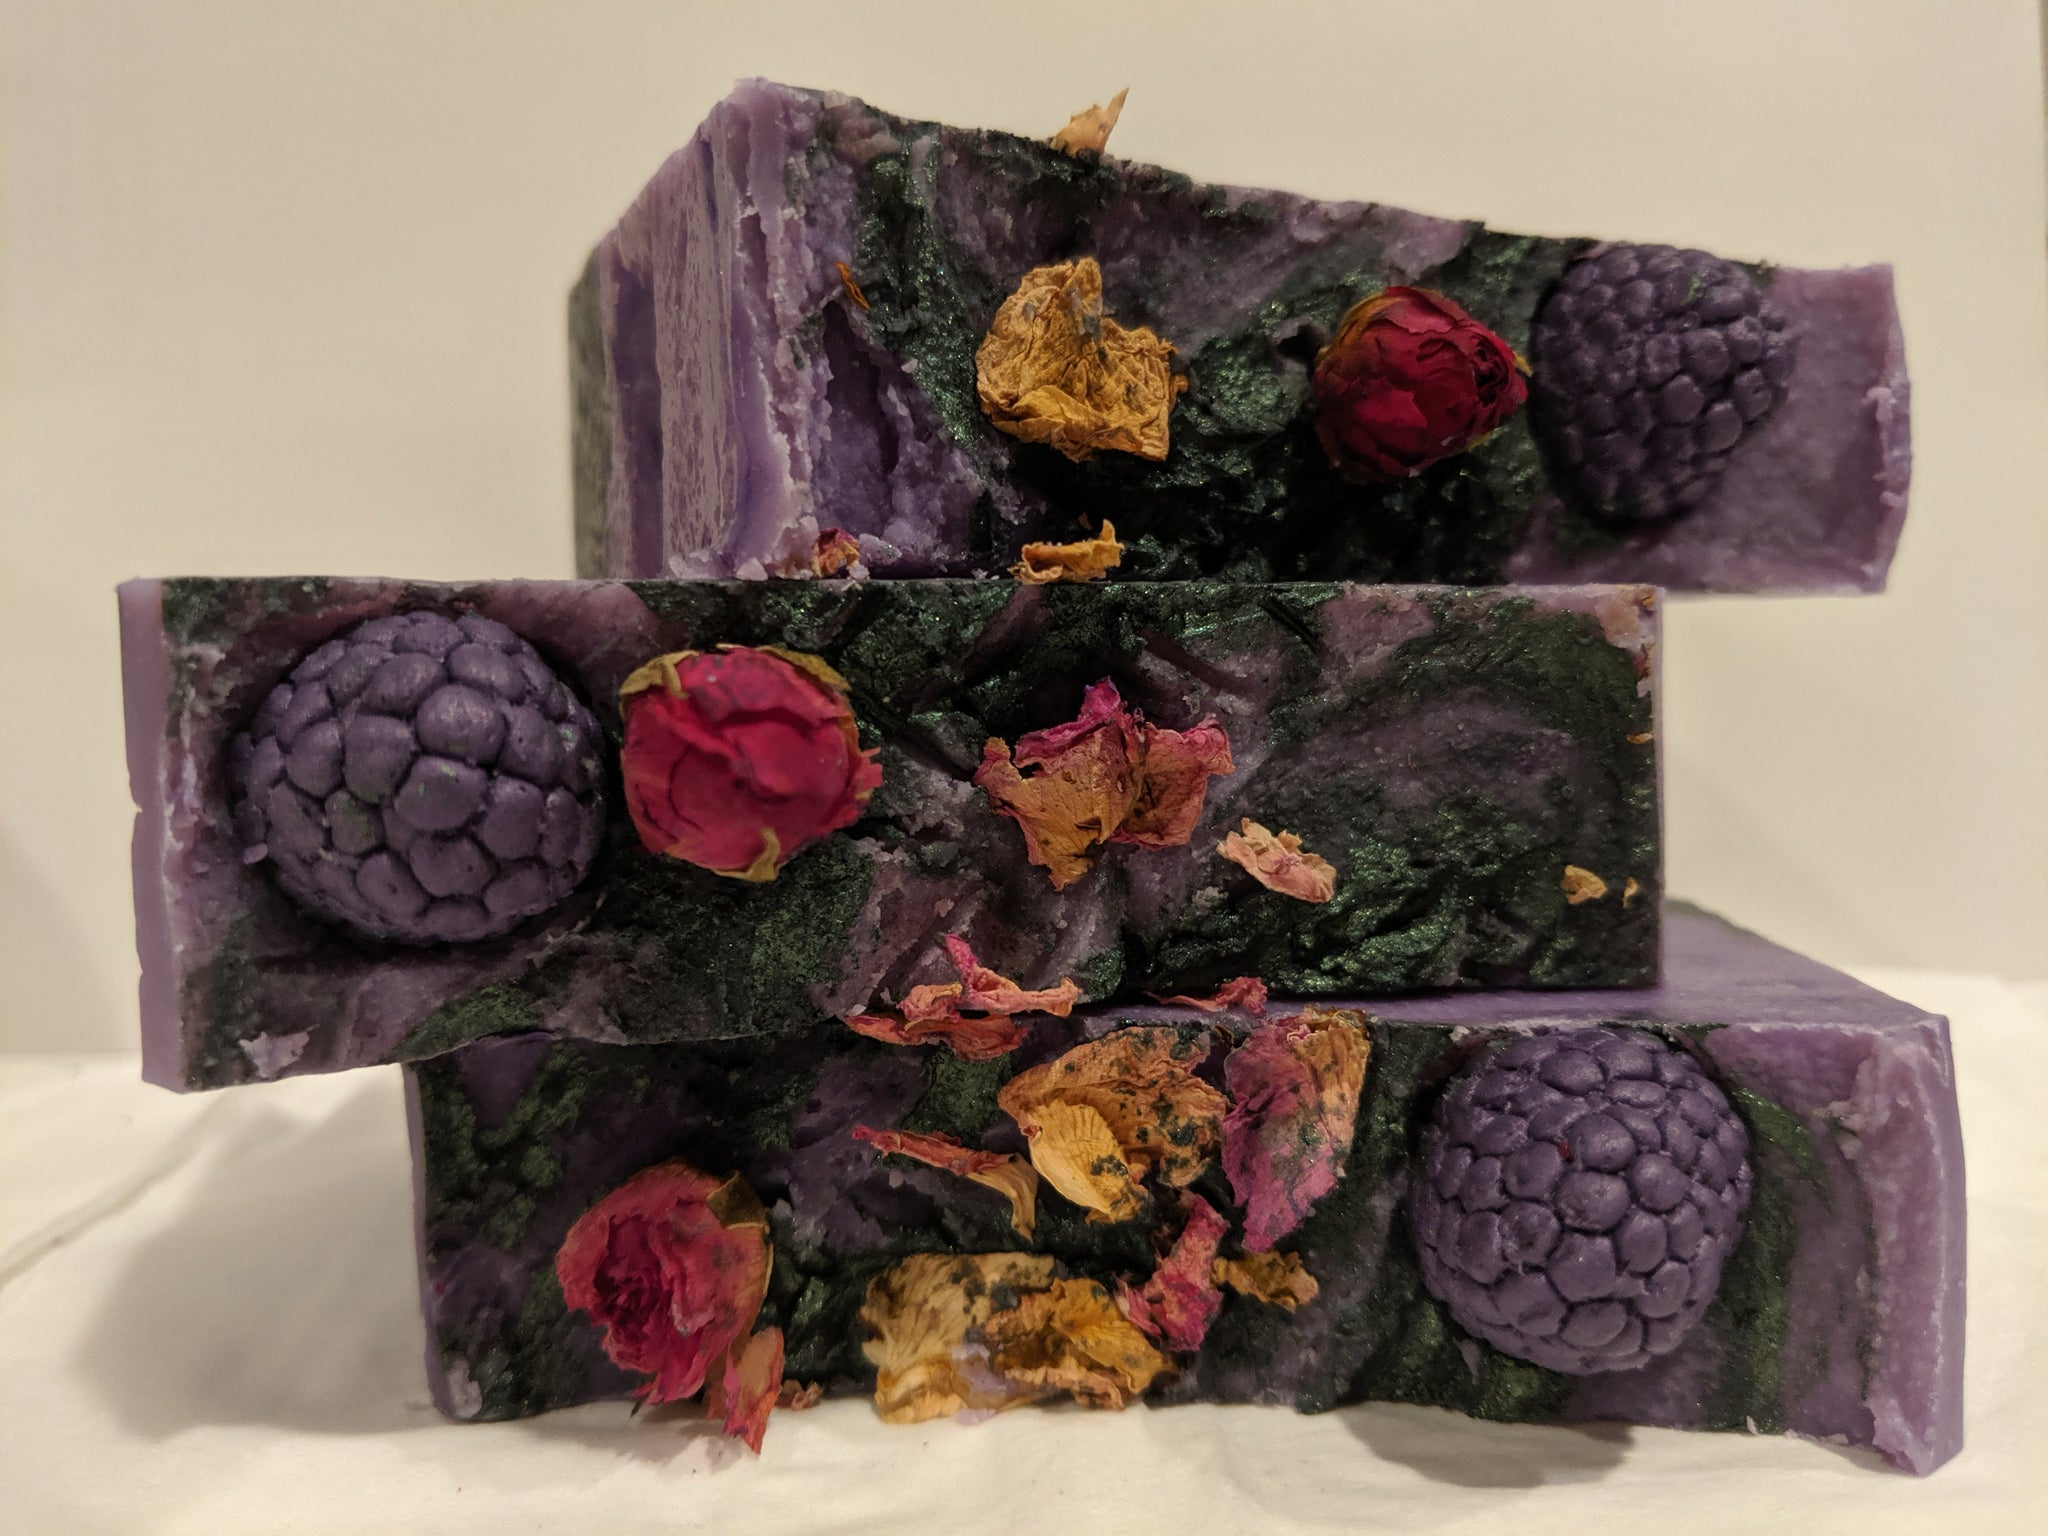 Blackberry & Rose Jam Artisan Soap